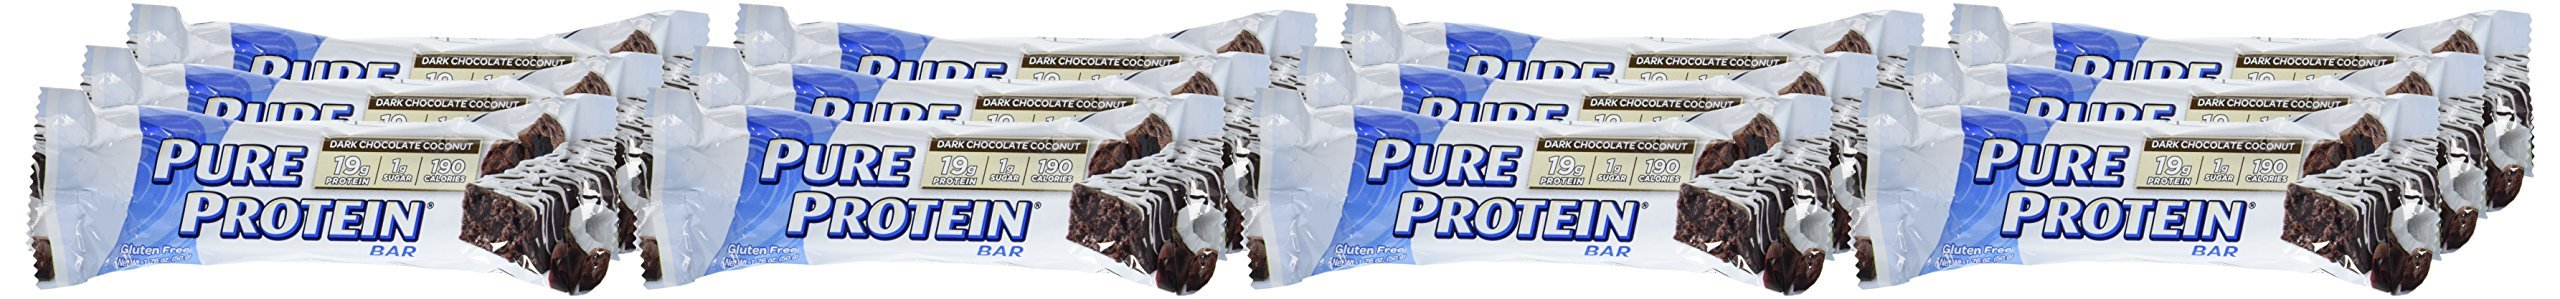 Pure Protein Dark Chocolate Coconut, 1.76oz, 2 Pack (12 Count) by Pure Protein (Image #6)